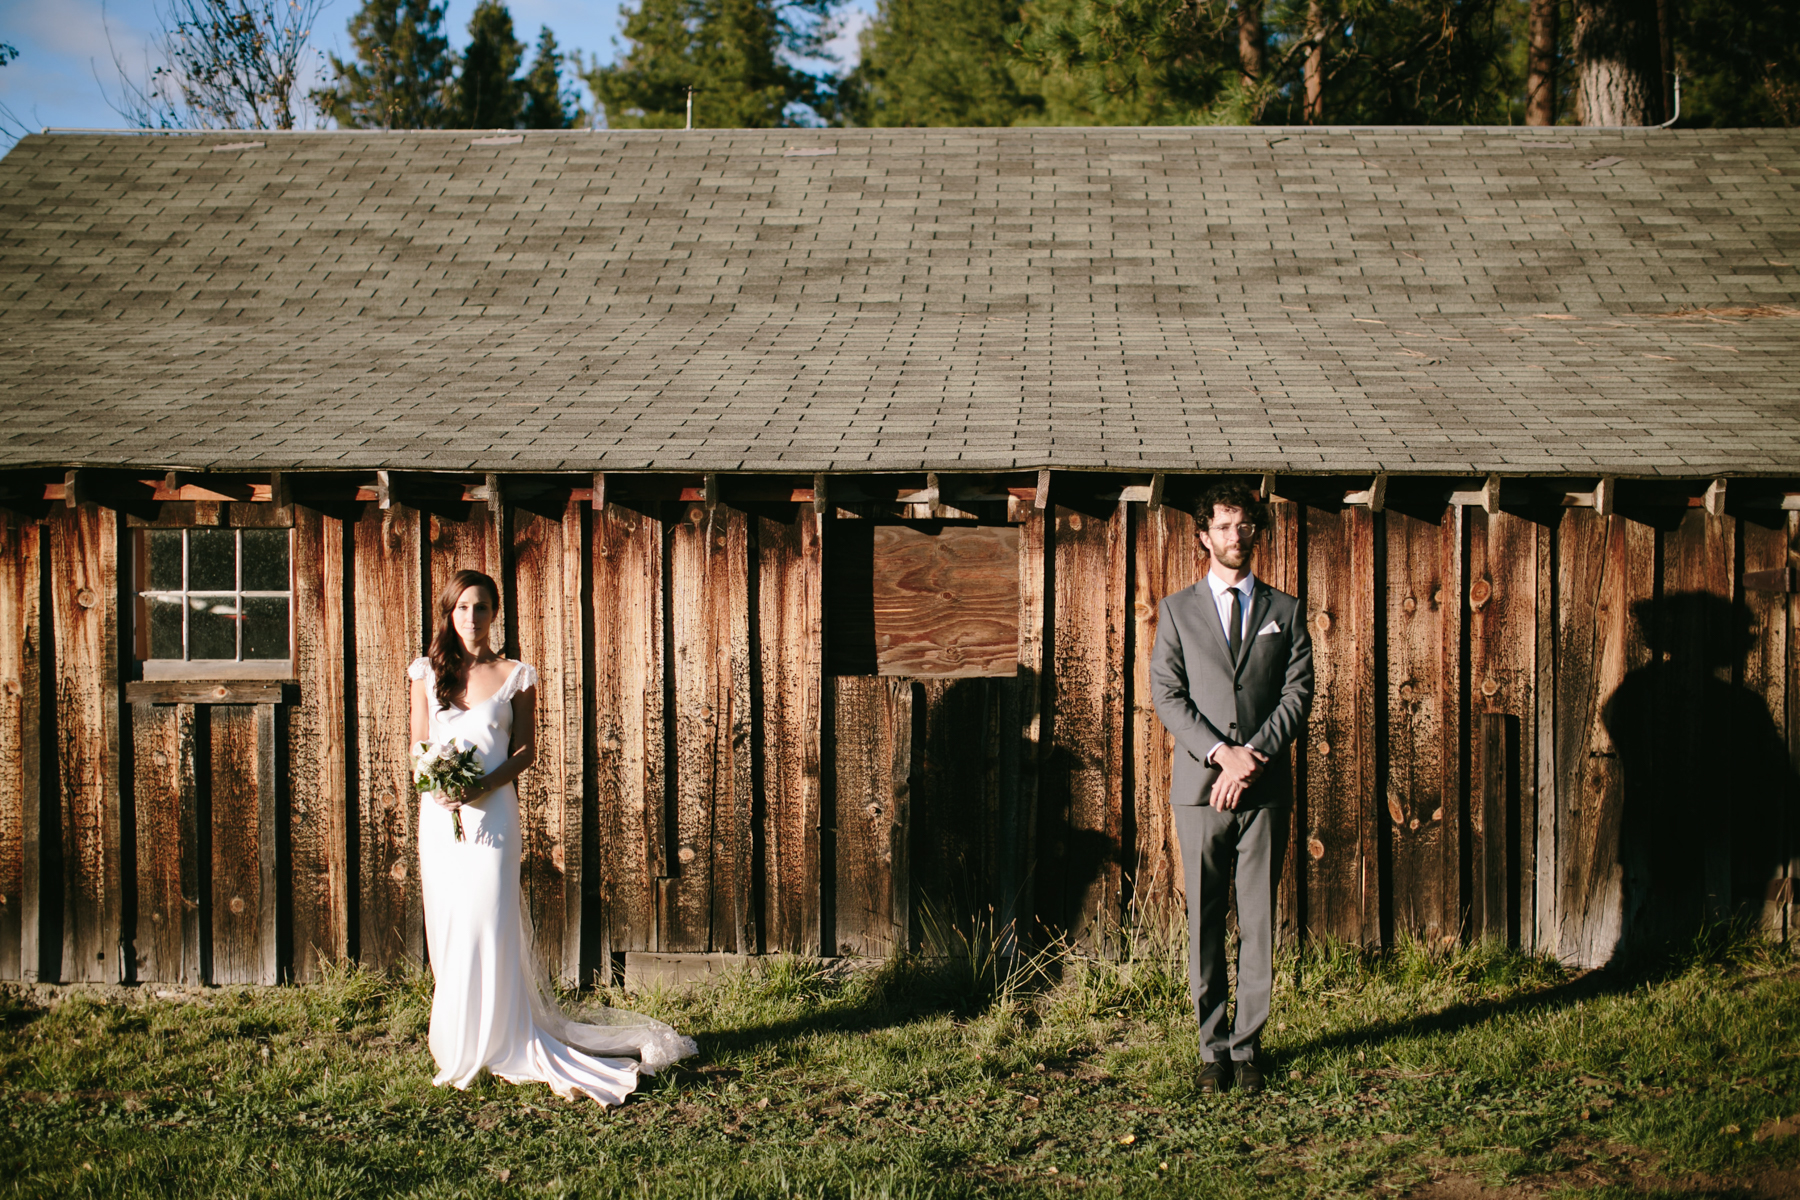 houseonmetoliuswedding-847.jpg